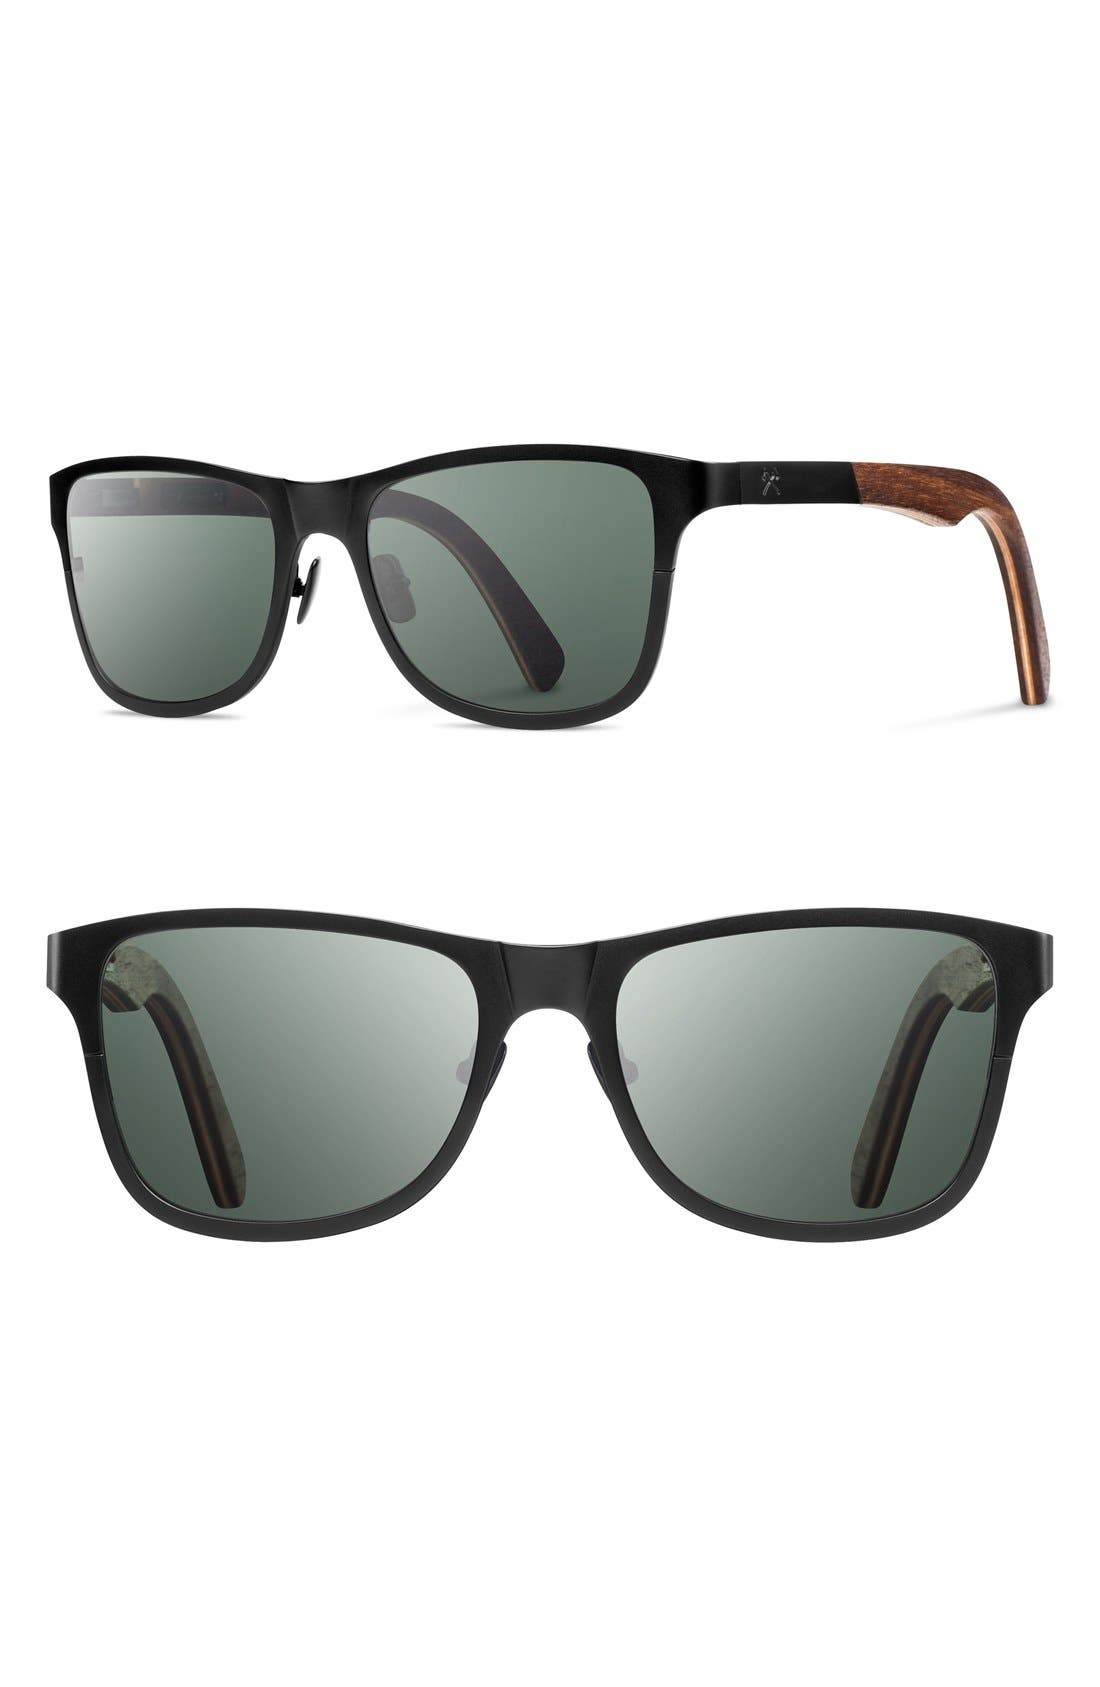 'Canby' 54mm Polarized Titanium & Wood Sunglasses,                         Main,                         color, BLACK/ WALNUT